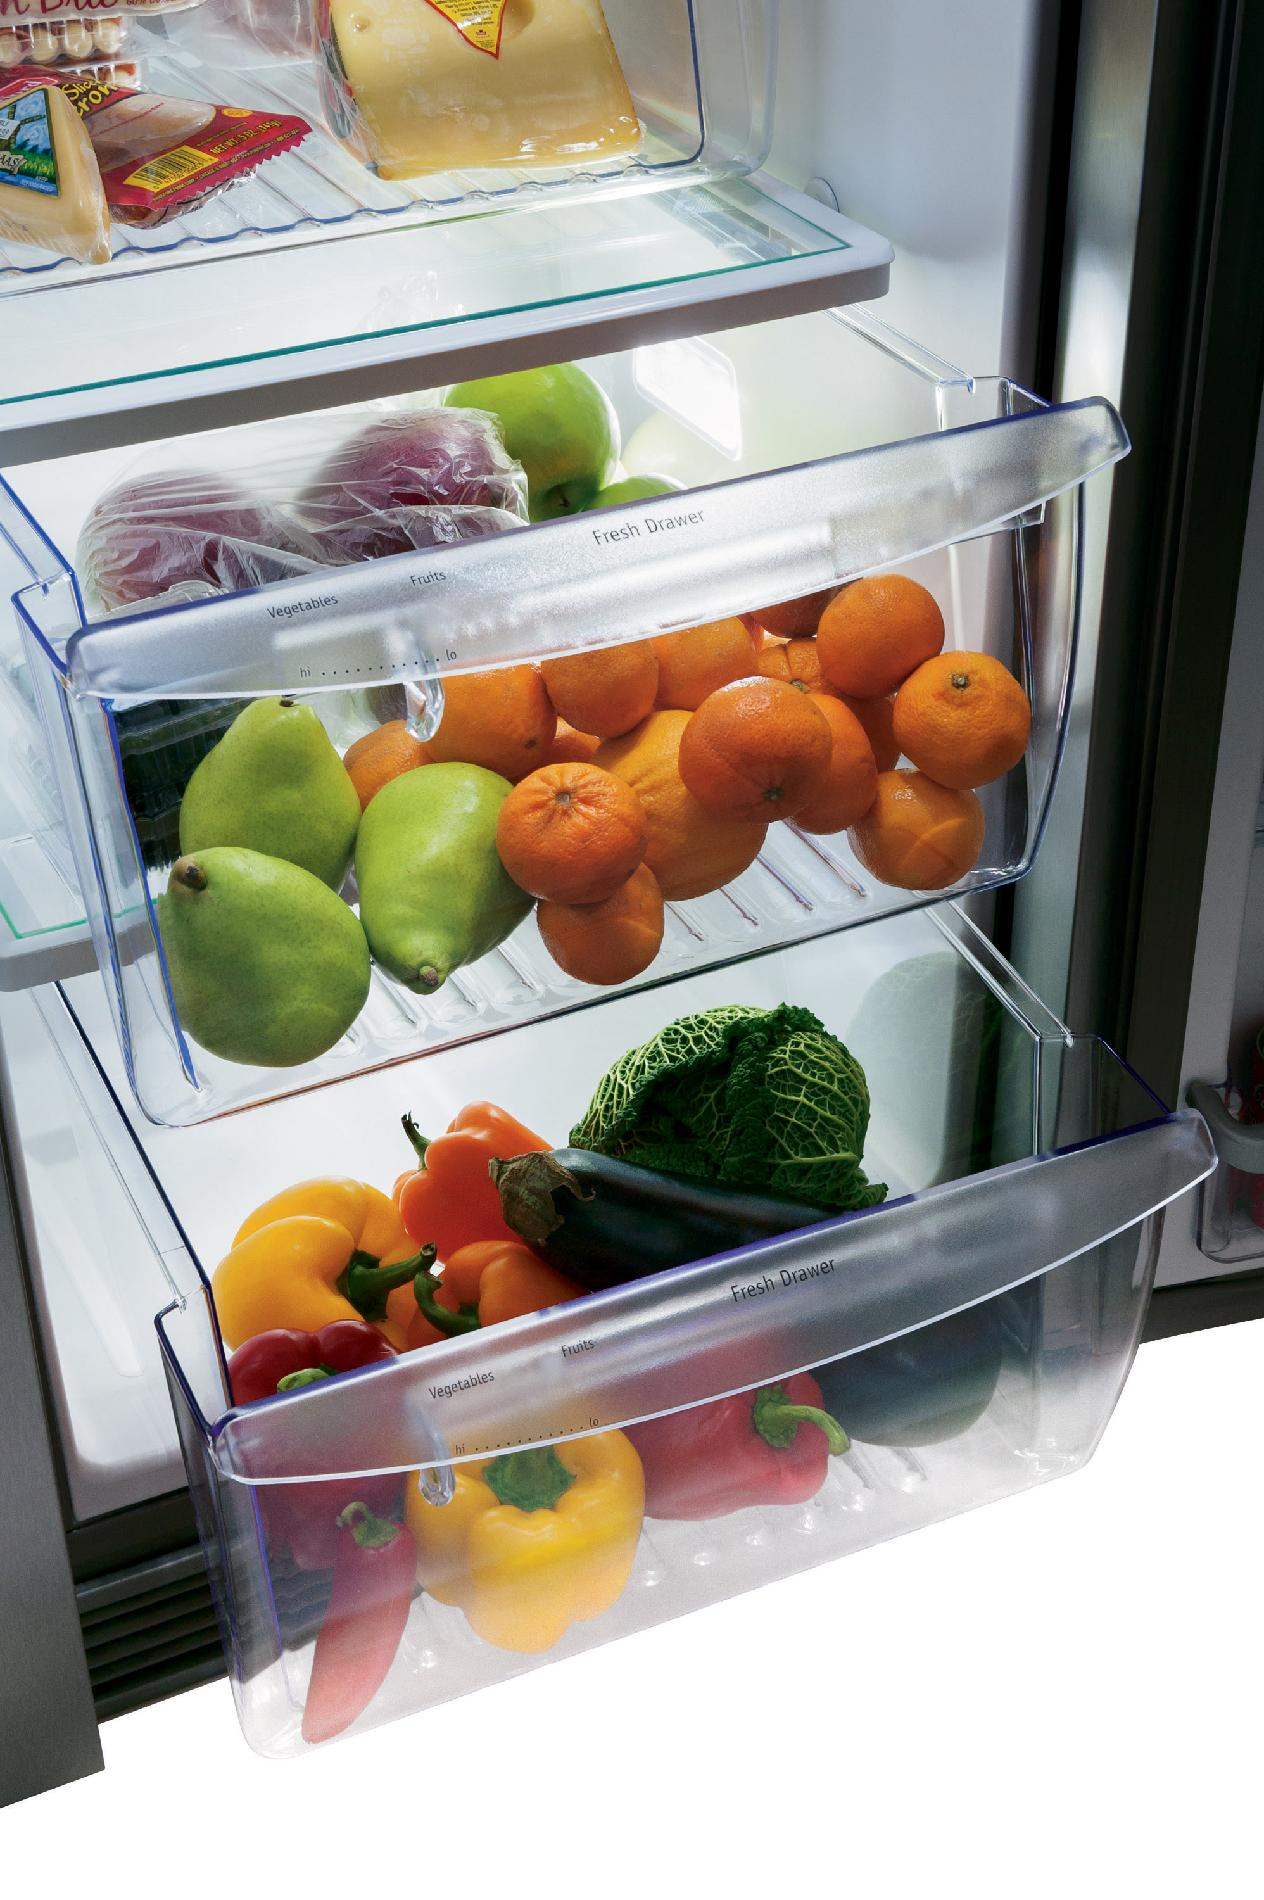 Frigidaire Gallery FGHS2355PF 22.6 cu. ft. Side-by-Side Refrigerator - Stainless Steel